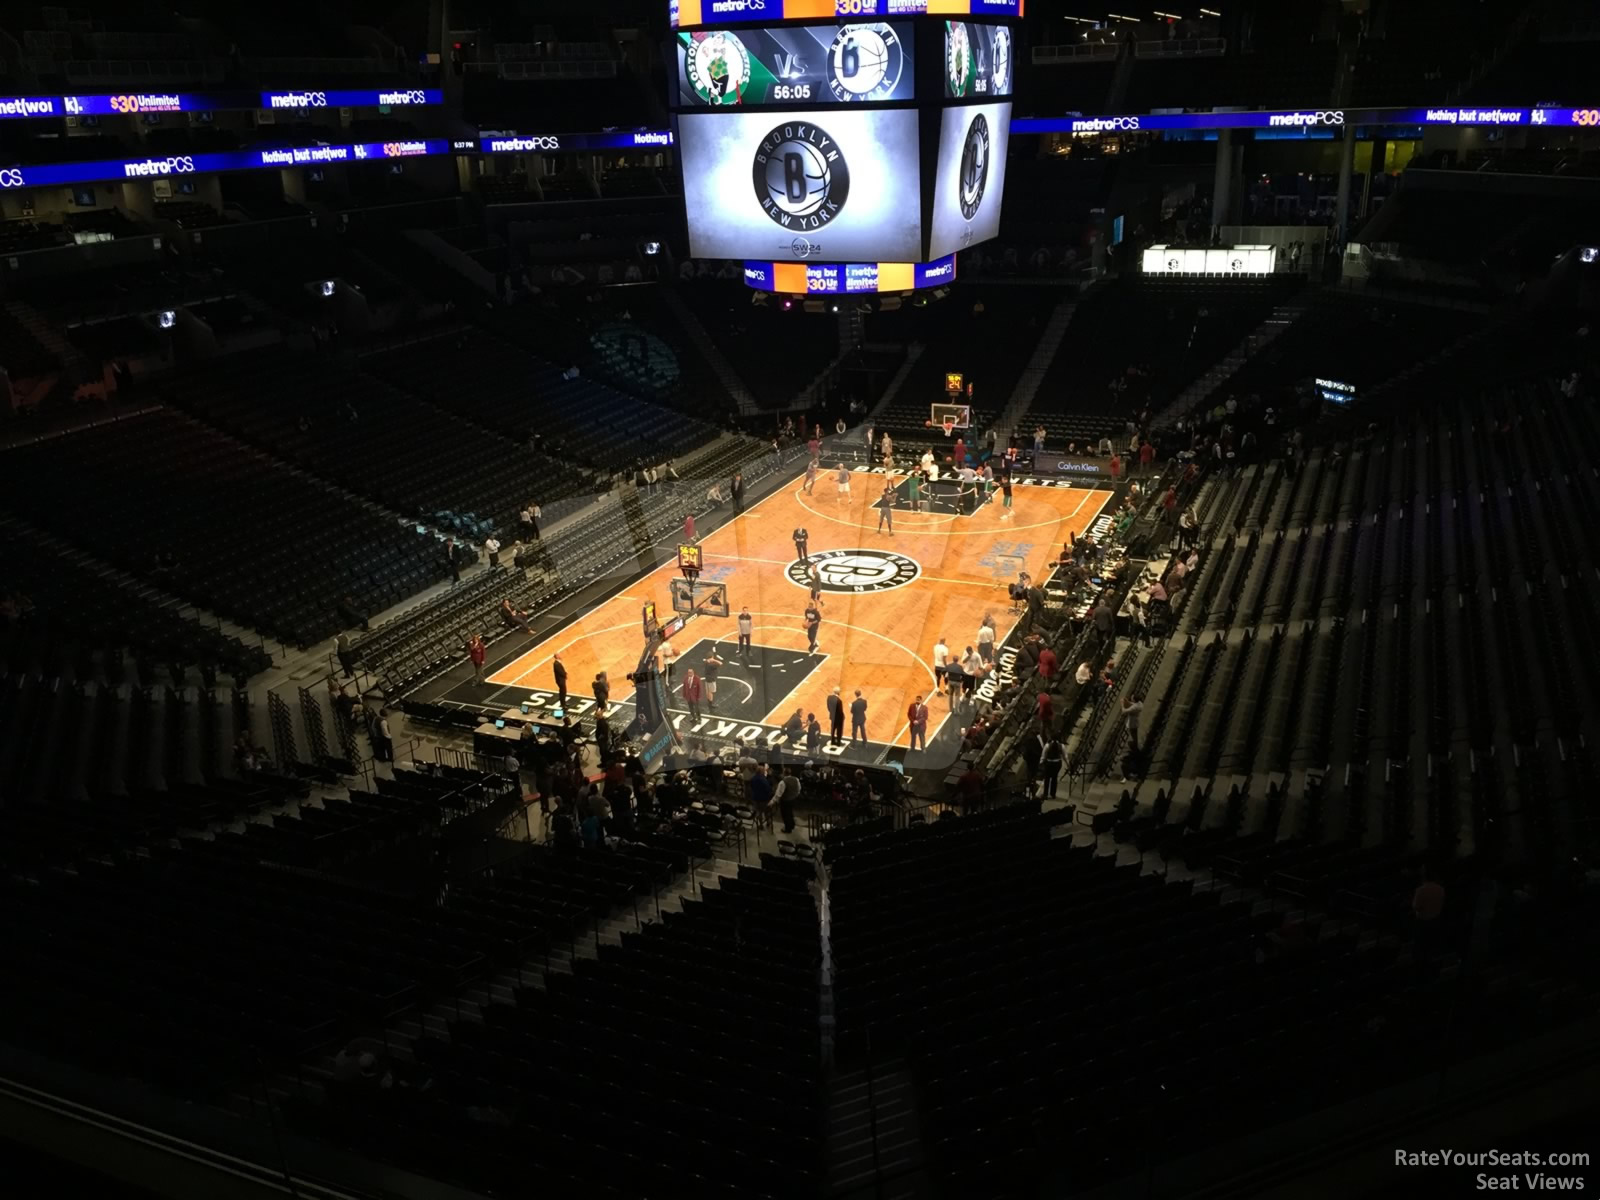 Cheap Tickets Concert >> Barclays Center Section 214 - Brooklyn Nets - RateYourSeats.com